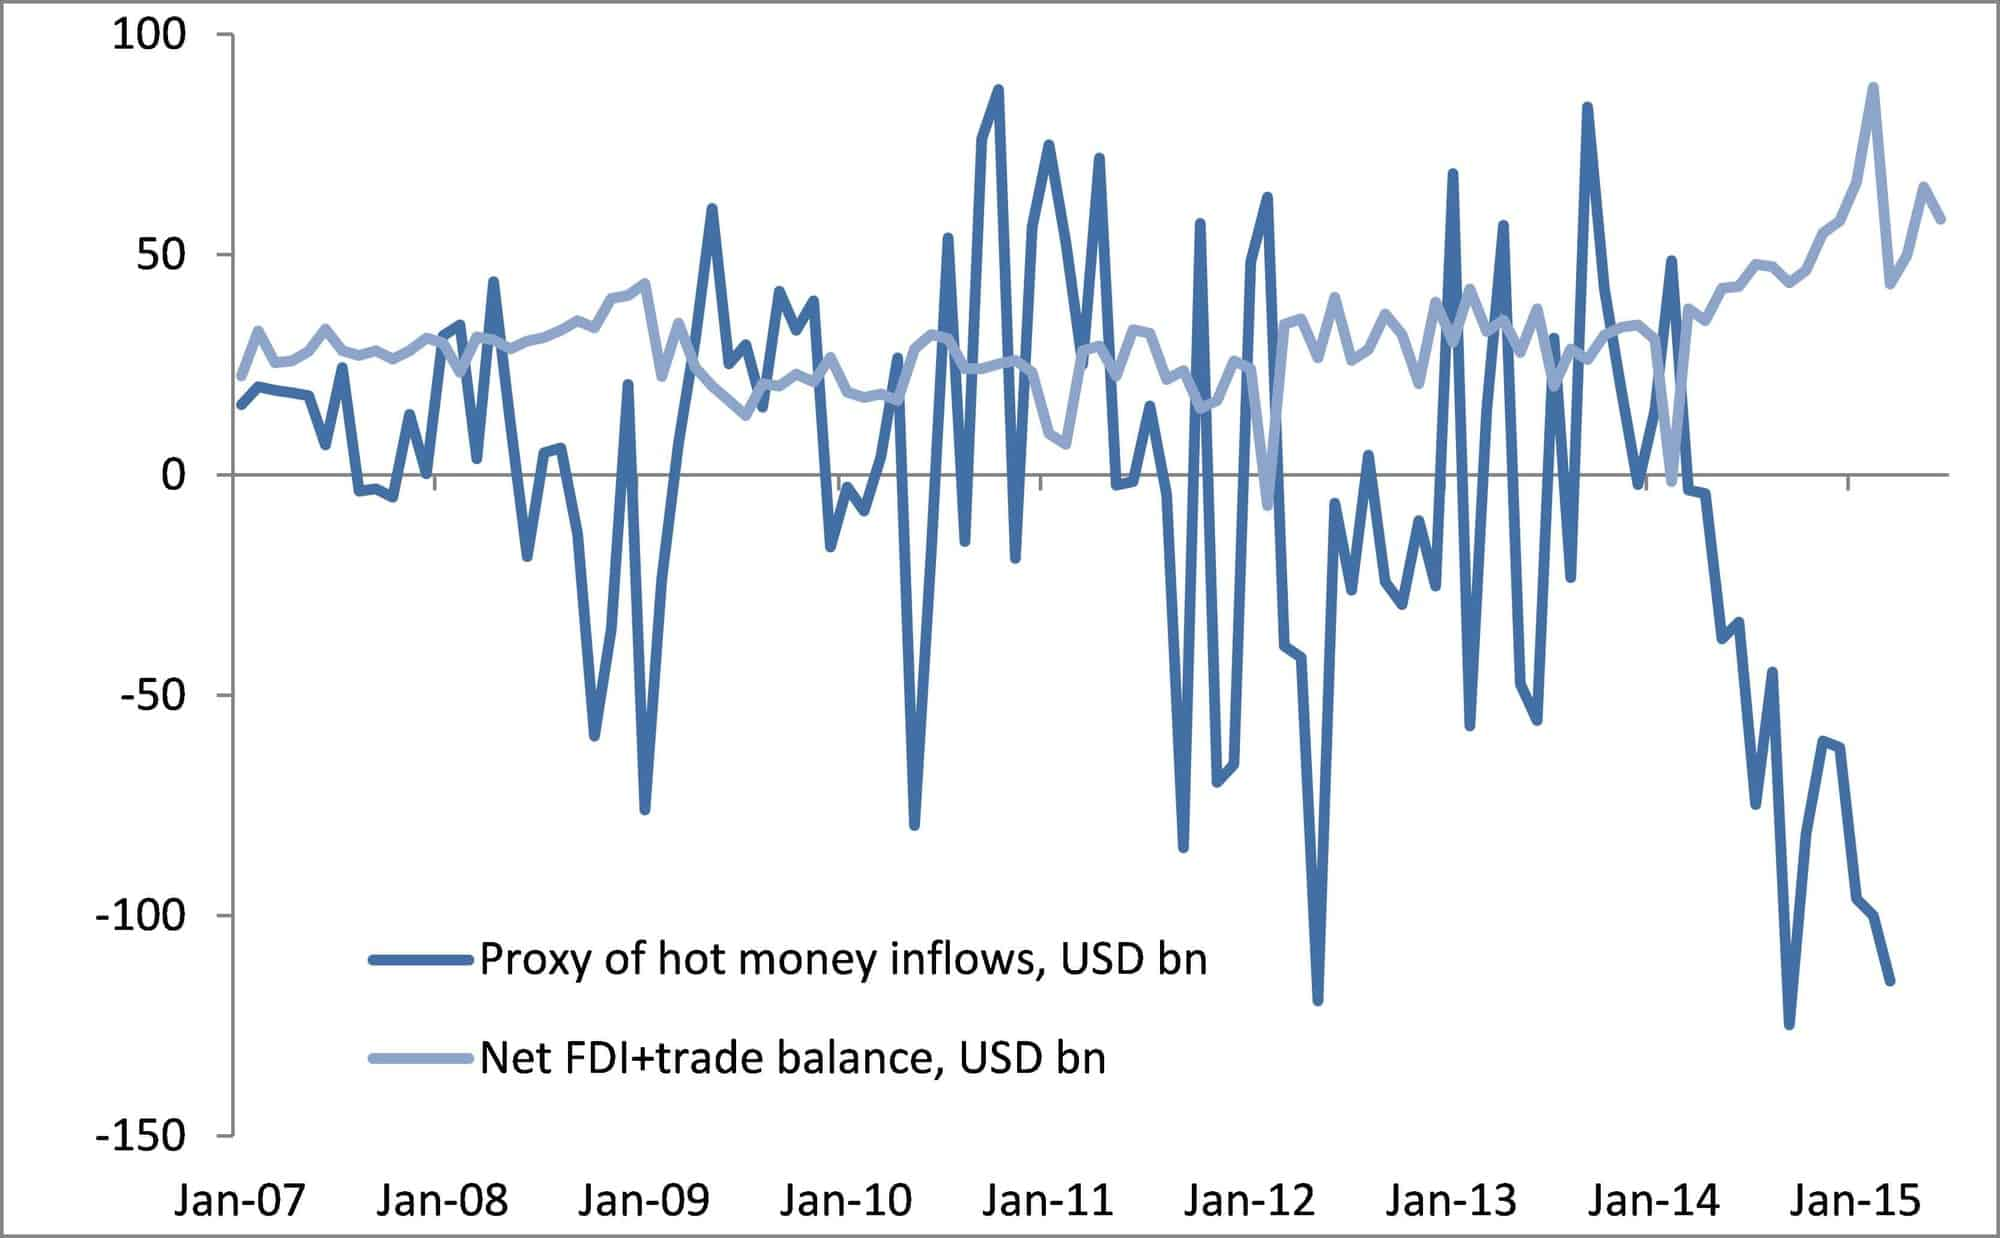 China's BoP shows large capital outflows according to our proxy